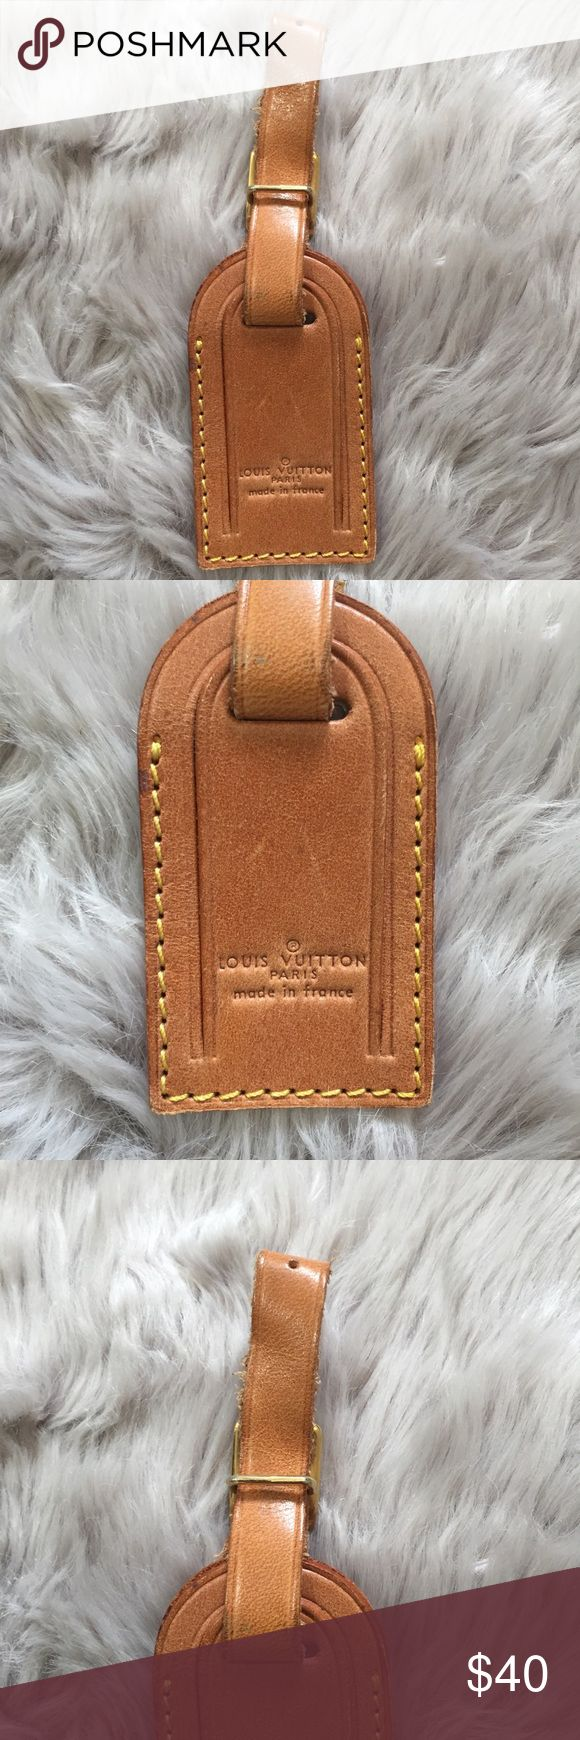 Authentic Louis Vuitton Small Luggage Tag Perfect to use for your winter getaways this year! Attach it to your suitcase or purse and add a bit of luxury to your travels.  100% guaranteed authentic. Excellent used condition. Smaller size. Louis Vuitton Accessories Key & Card Holders